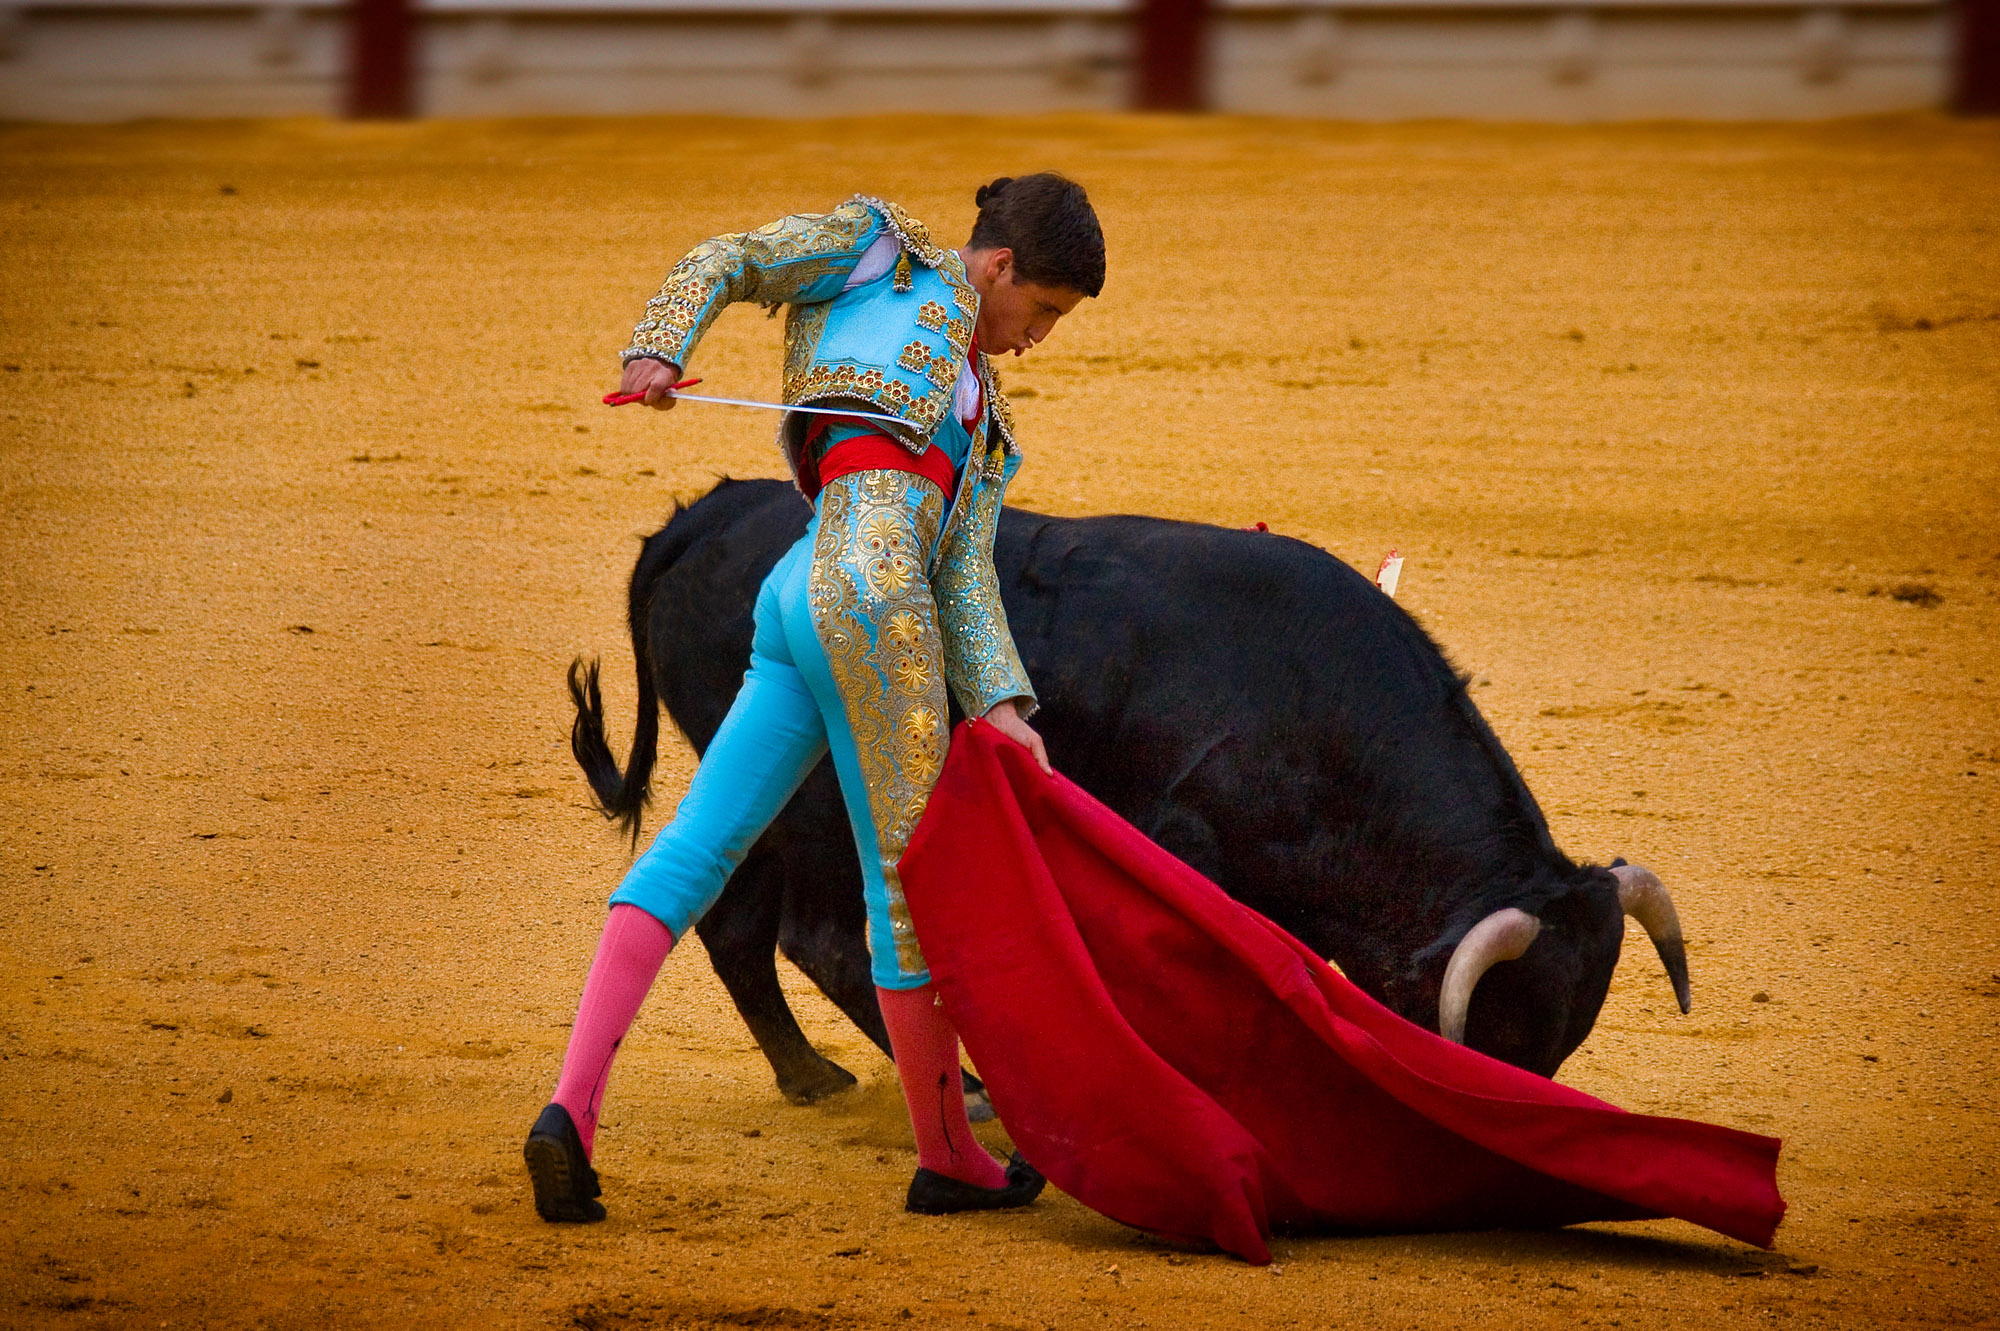 bullfighting Bullfighting, national sport and spectacle of spain called the corrida de toros in spanish, the bullfight takes place in a large outdoor arena known as the plaza de toros the object is for one of the.